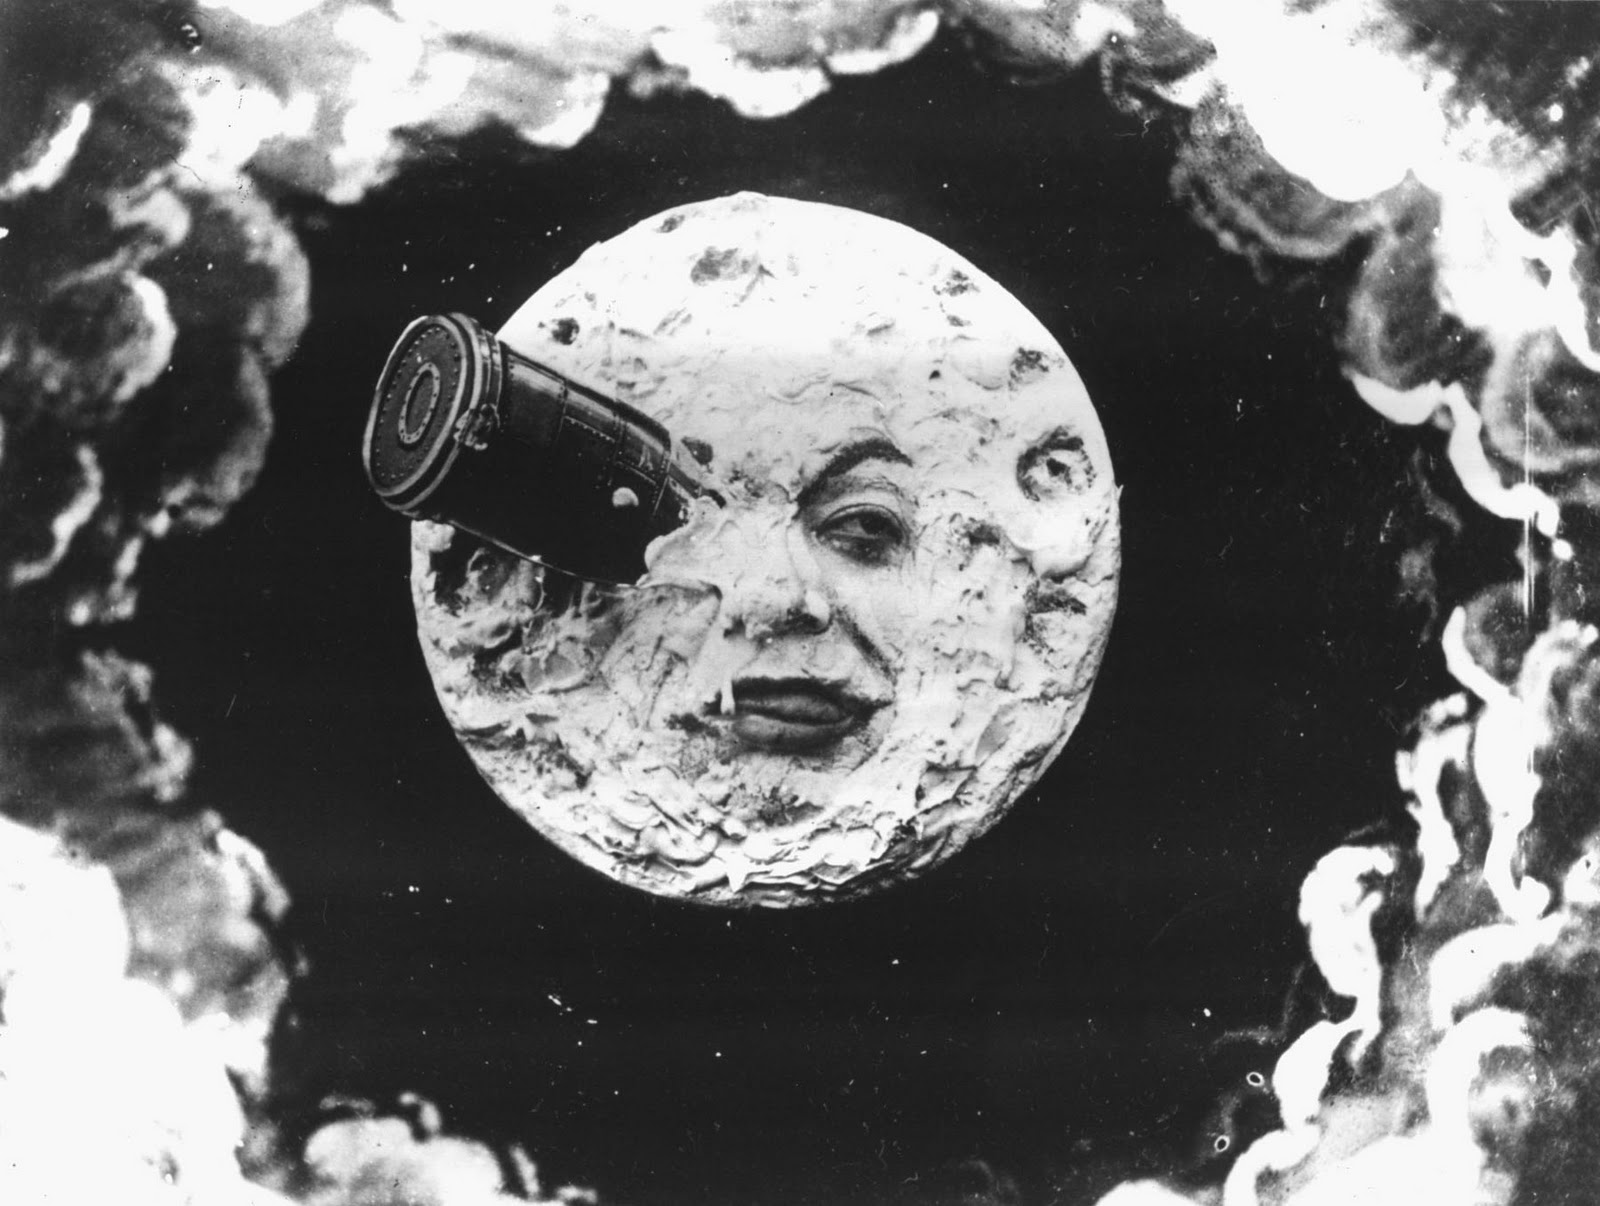 Georges Méliès (1861-1938)was an early adopter ofLumiere's inventions. His films imbued cinema with an encyclopedia of special effects and camera tricks, making audiences see him as a magician.